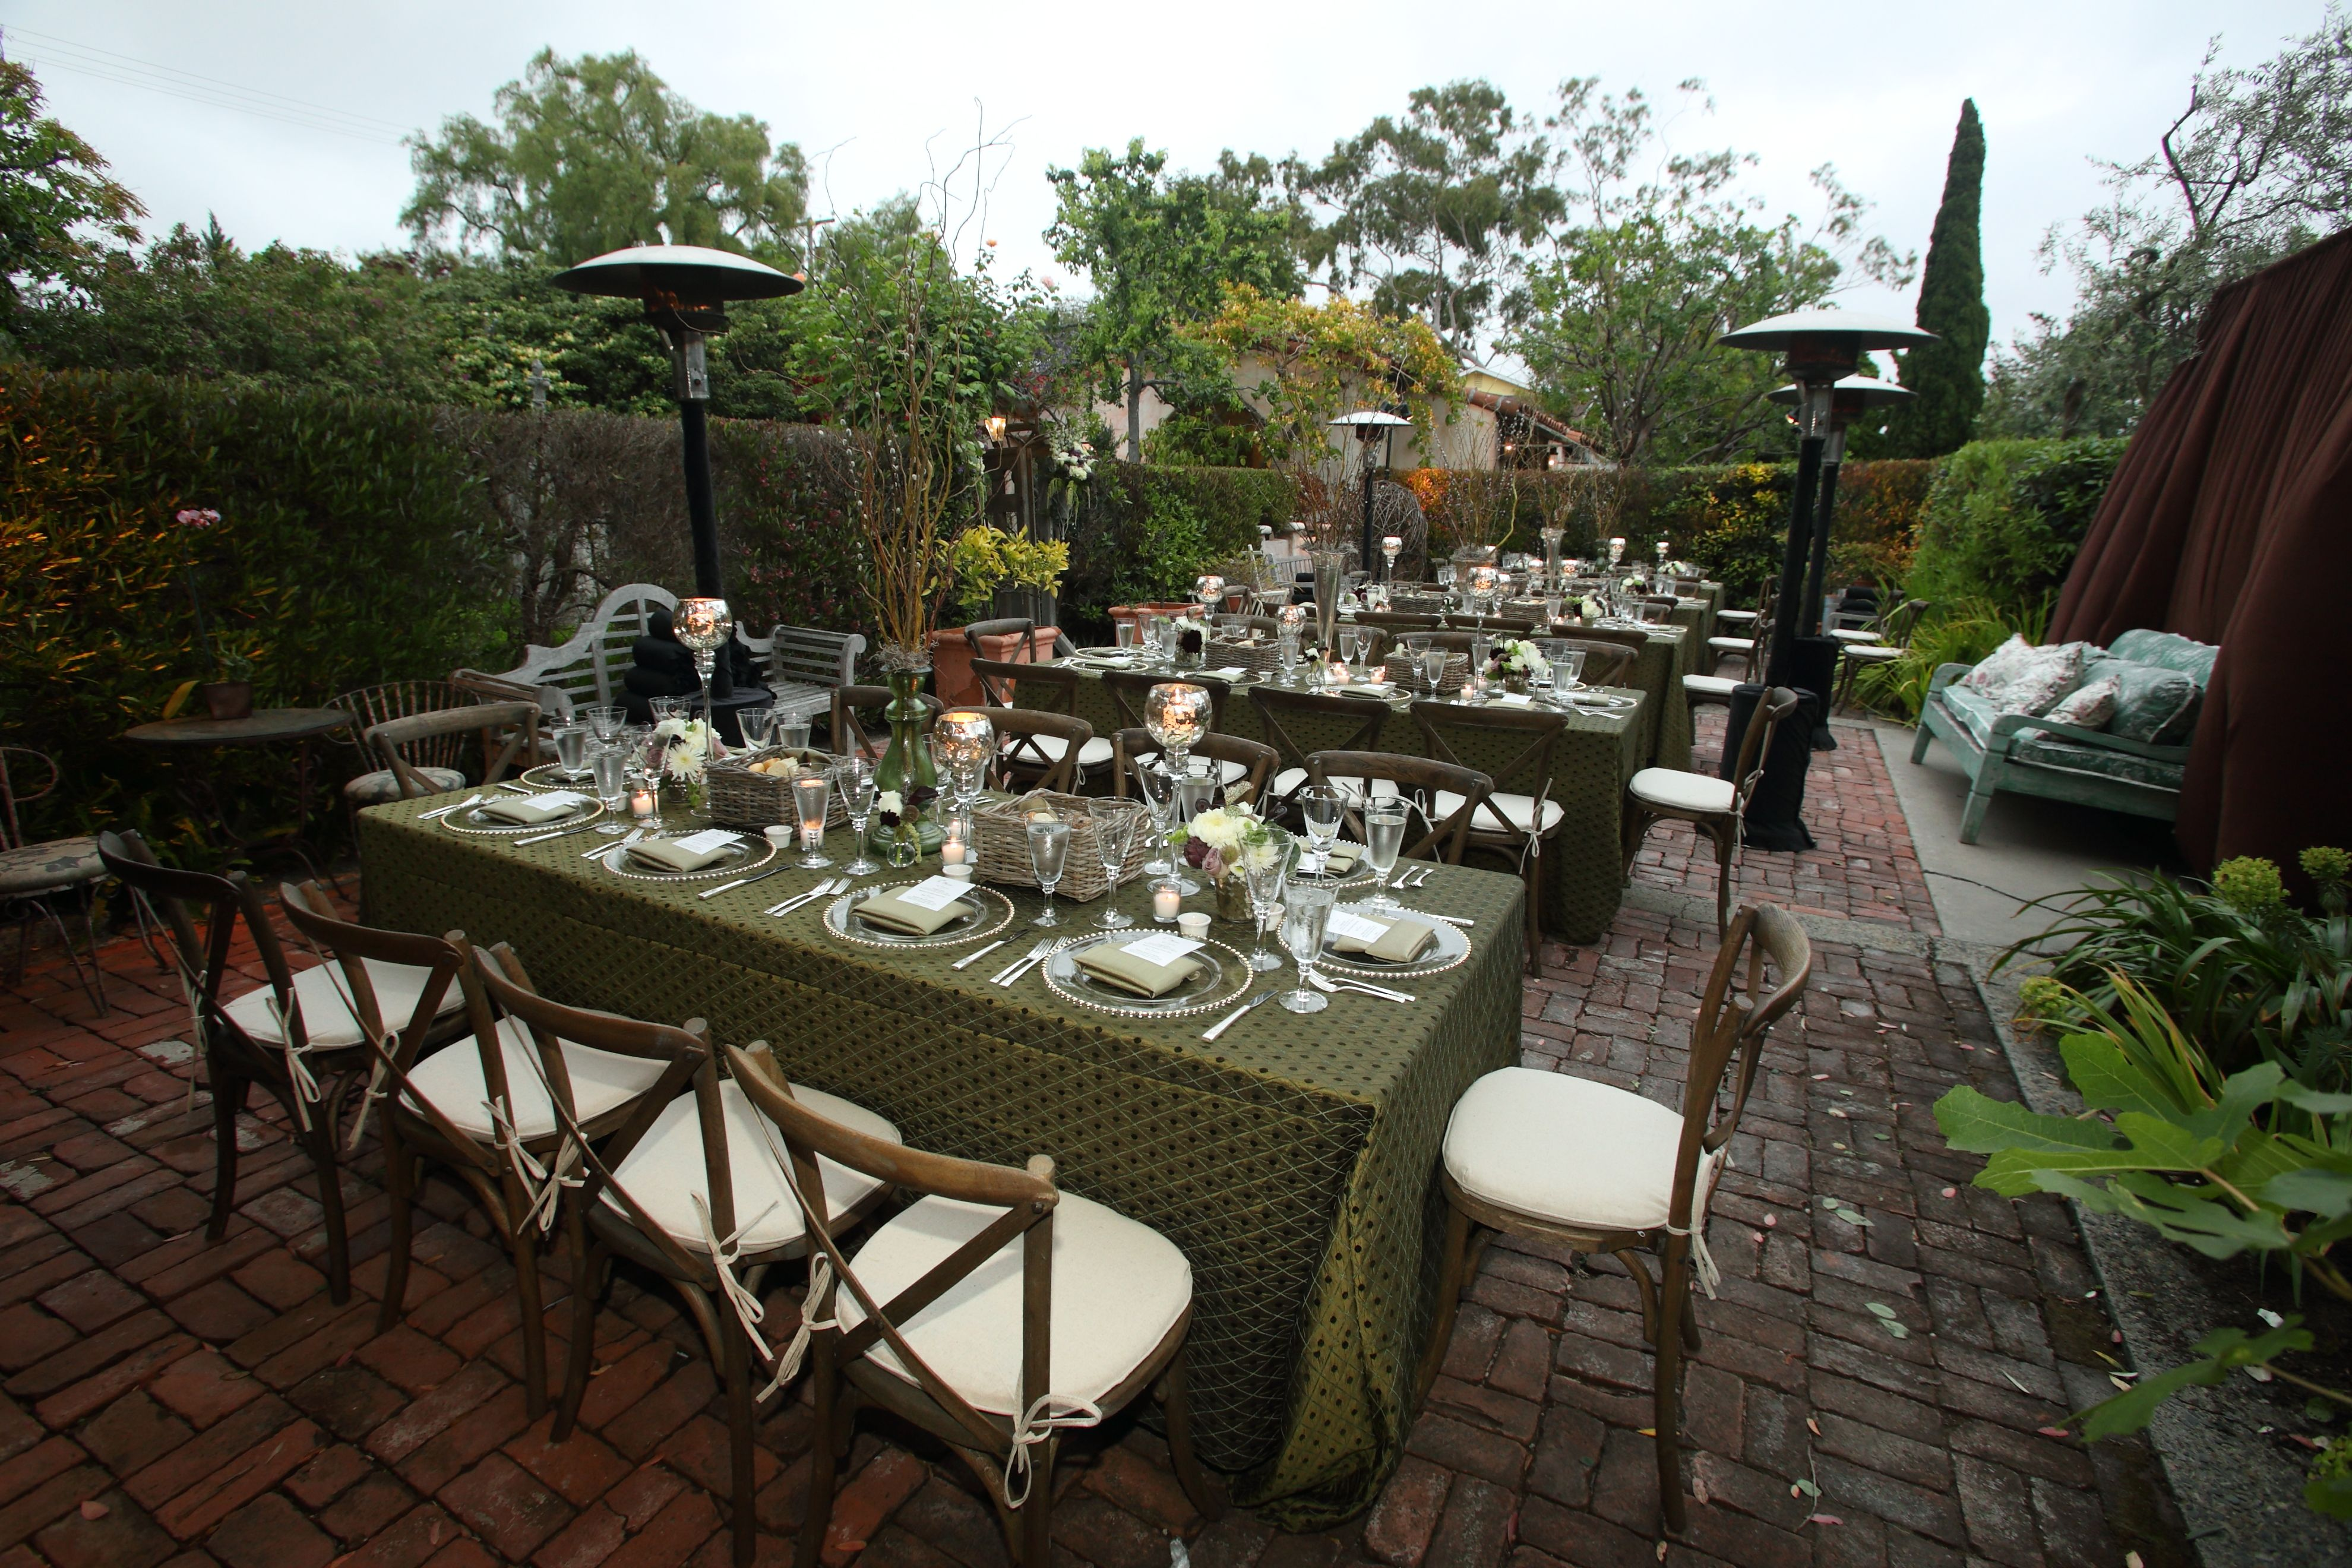 outdoor party event dinner rustic green | Cookout party